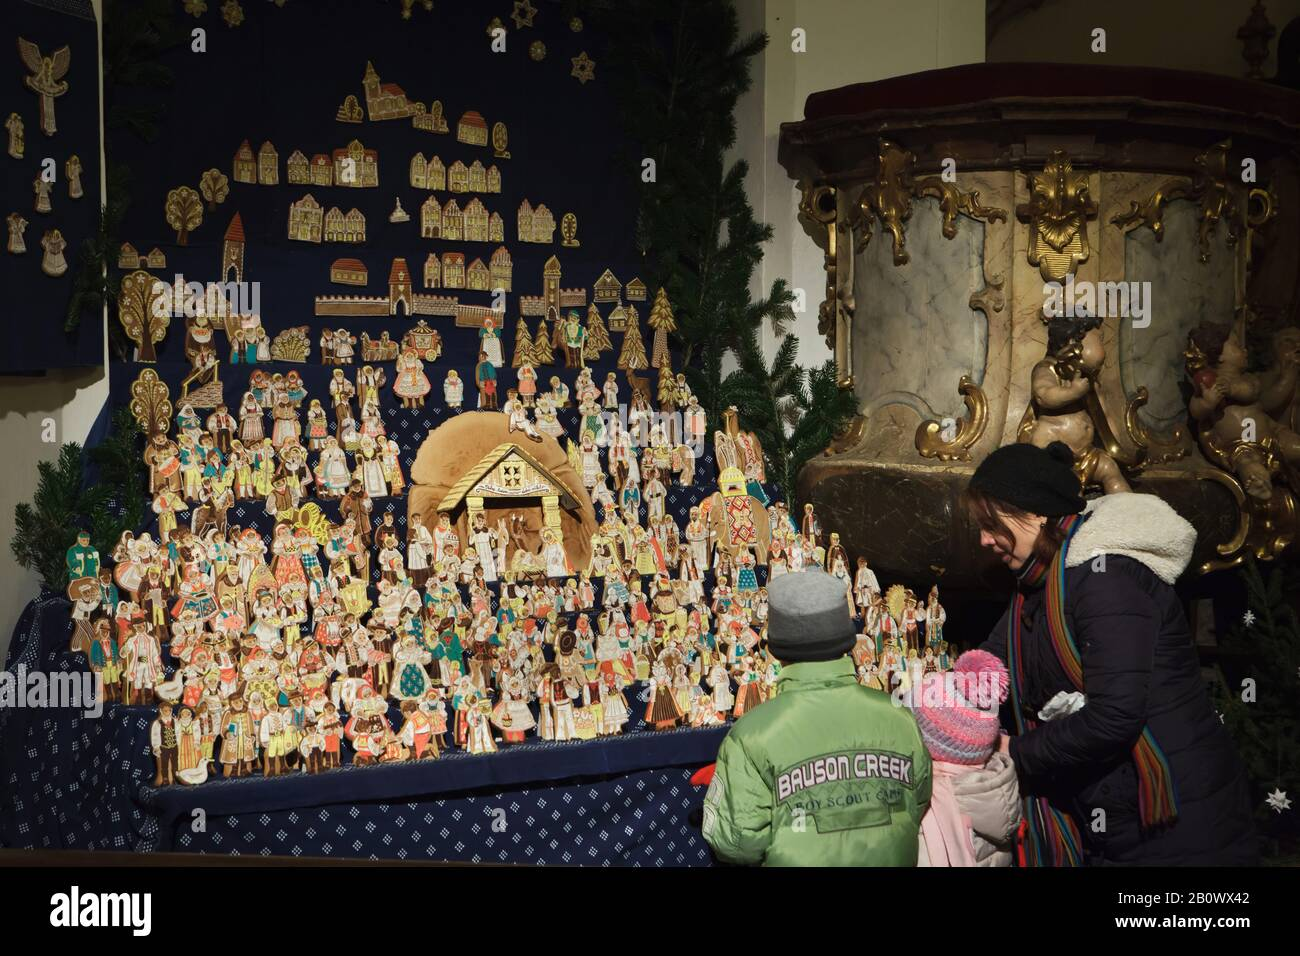 Young visitors observe the traditional gingerbread nativity scene (perníkový betlém) displayed in Saint Matthias Church (Kostel svatého Matěje) in Dejvice district in Prague, Czech Republic. Gingerbread figures of the nativity scene are baked annually in the church in the Christmas season. Stock Photo